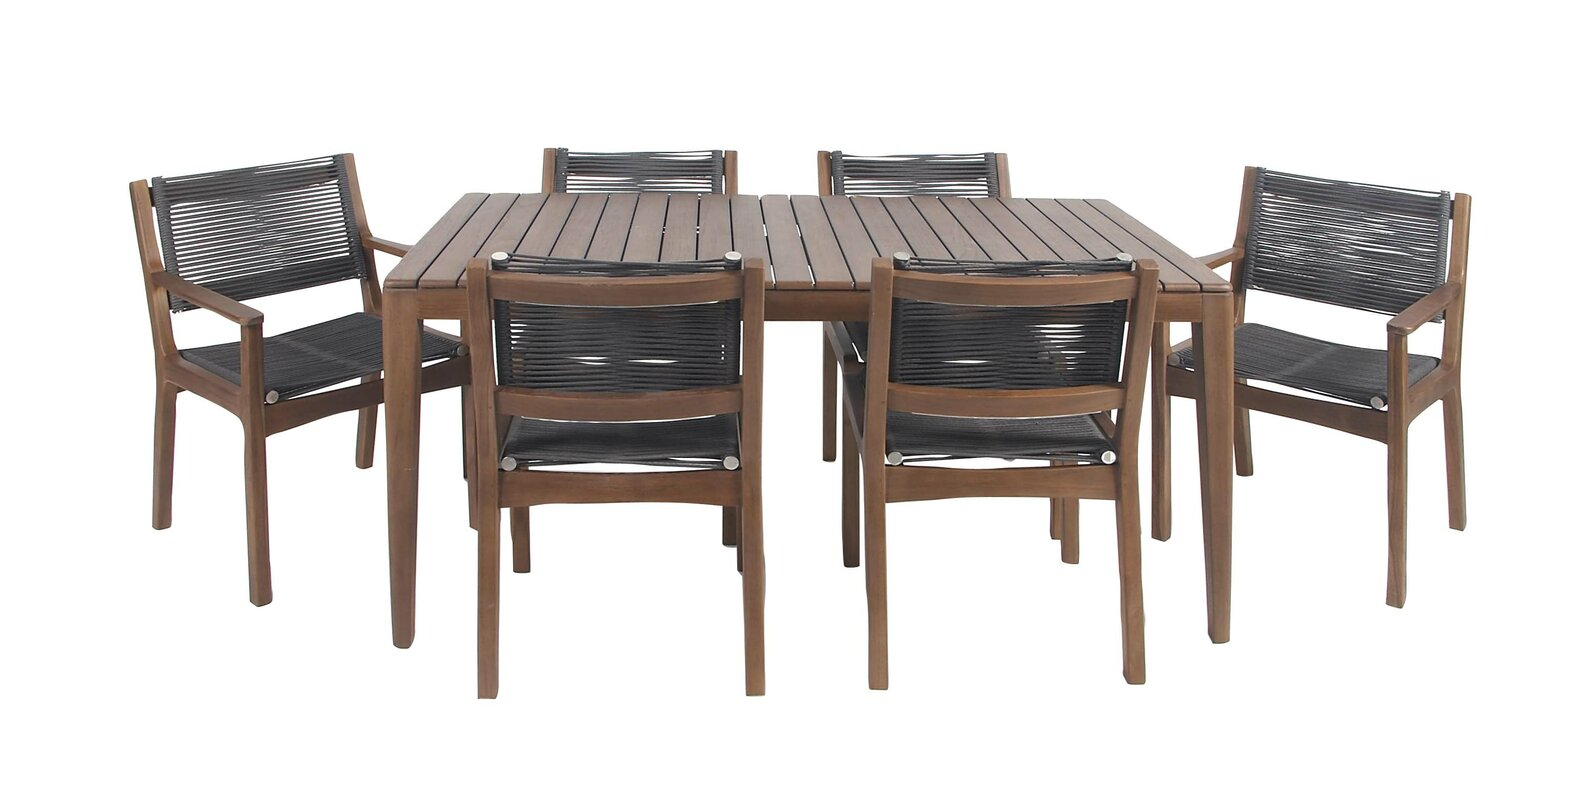 Bungalow Rose North La Junta Rustic Teak 7 Piece Dining Set ...